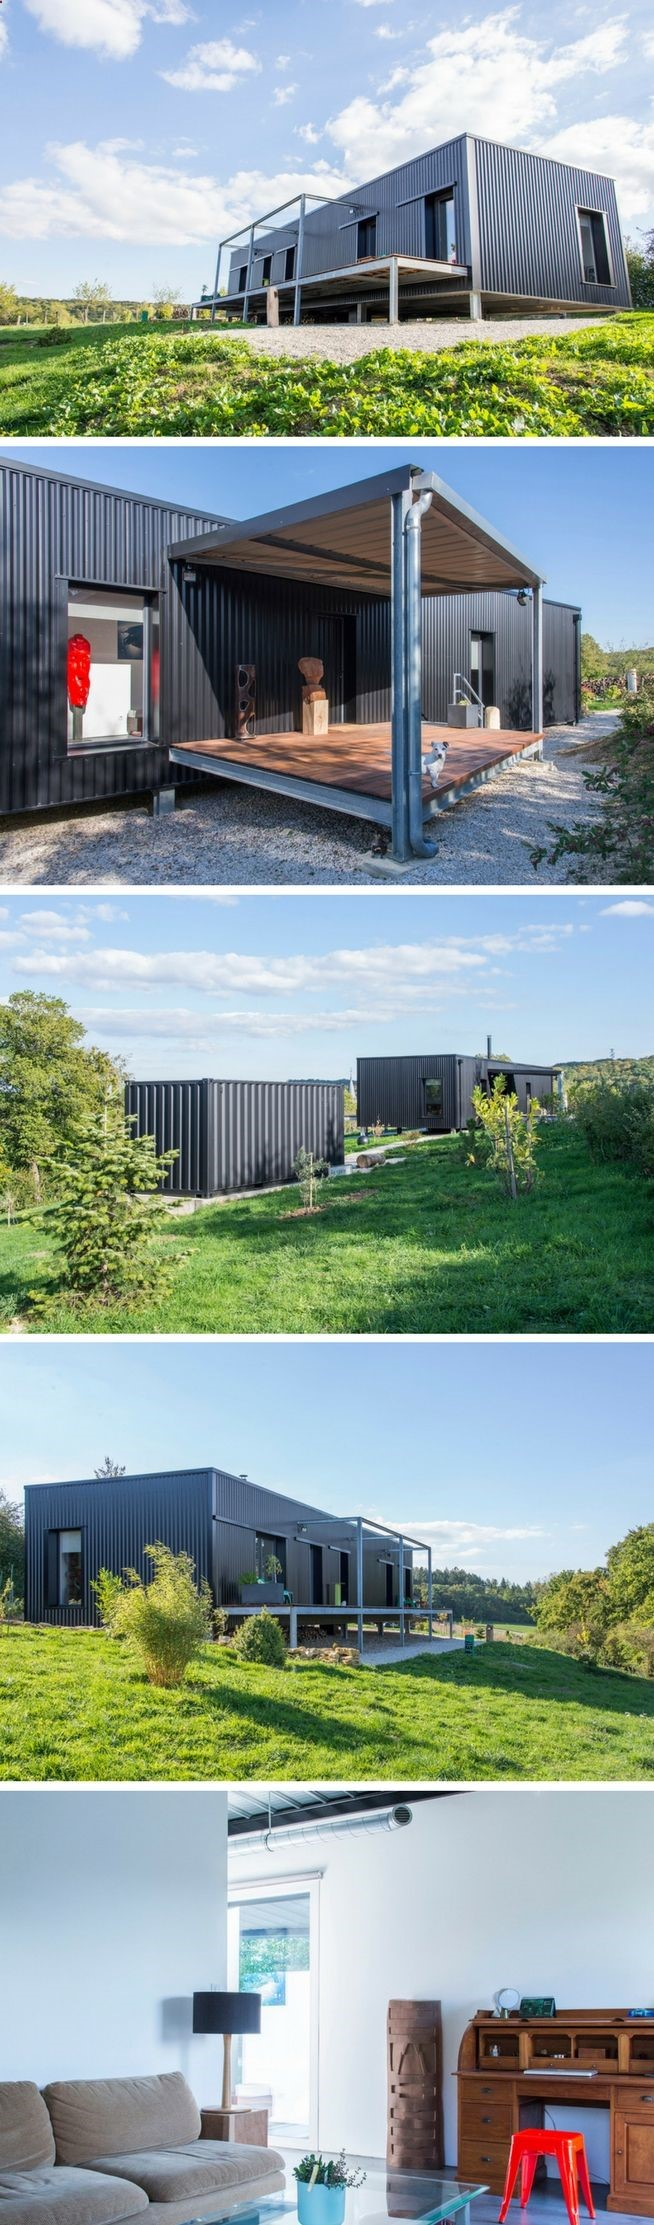 Container house diamant shipping container home who else wants